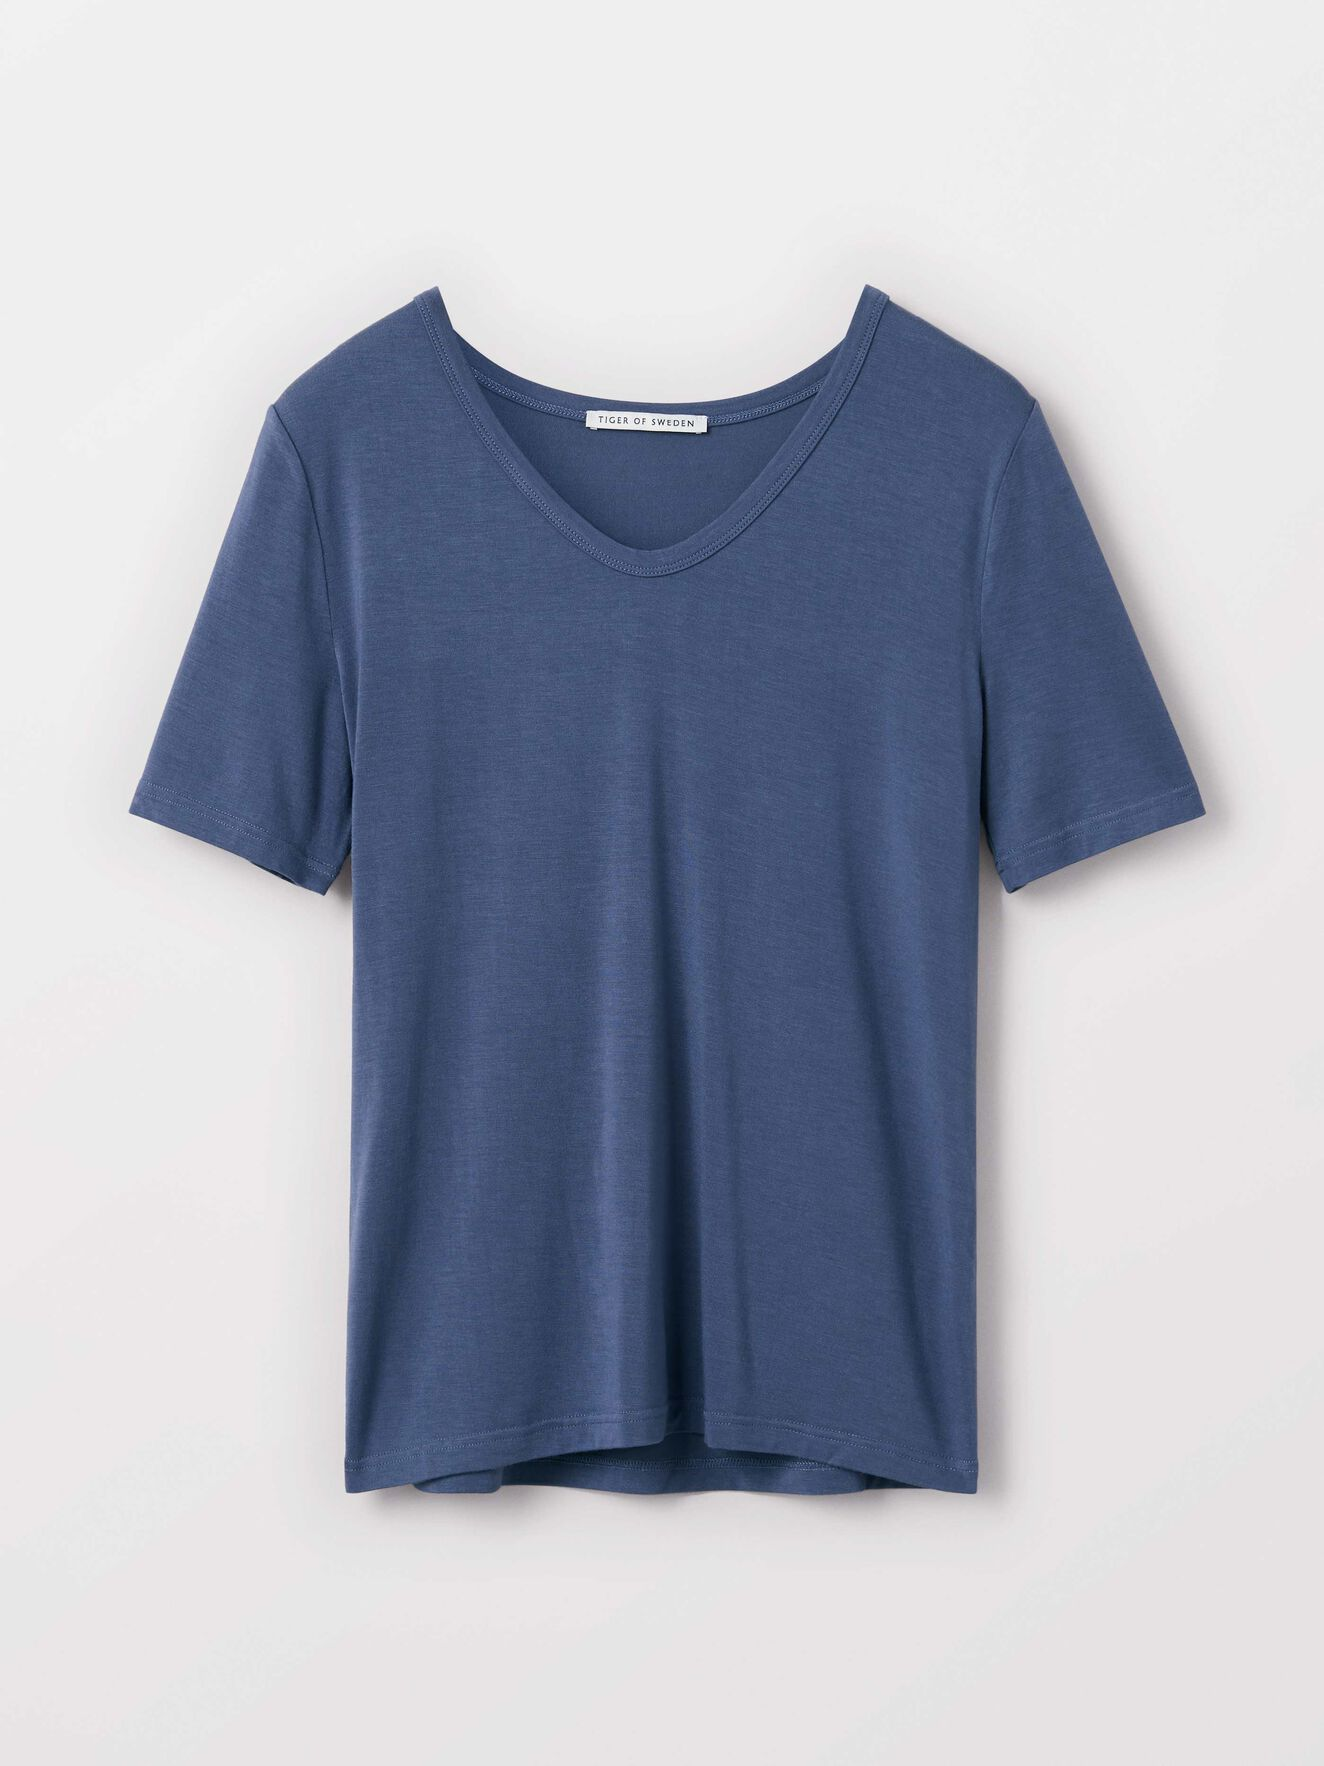 Hapa T-Shirt in Soft blue from Tiger of Sweden